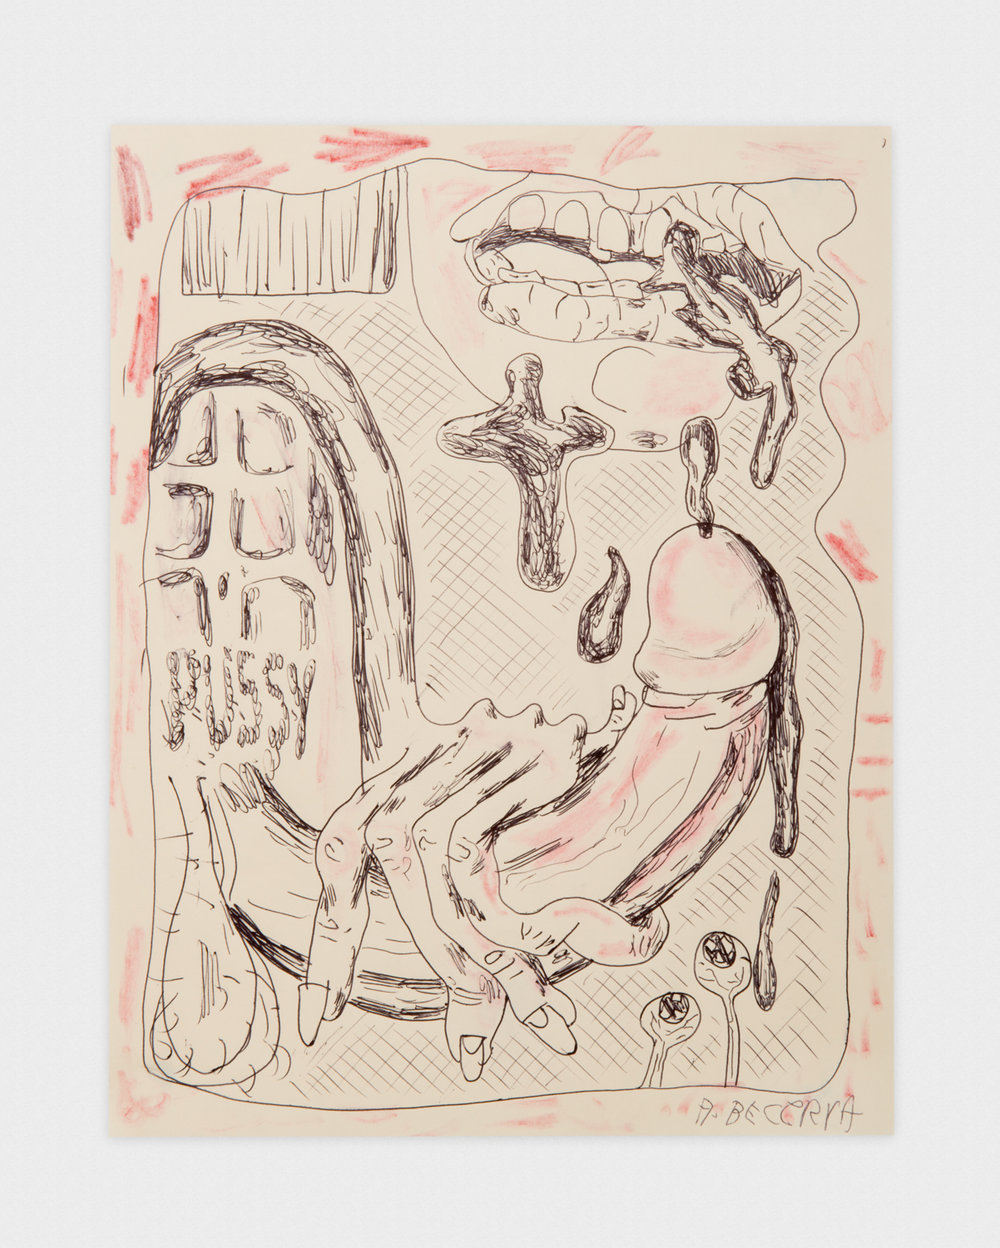 Alex Becerra Untitled 2016 Ballpoint pen and ink on paper 11 x 8 1/2 in (27.94h x 21.59w cm) AB429